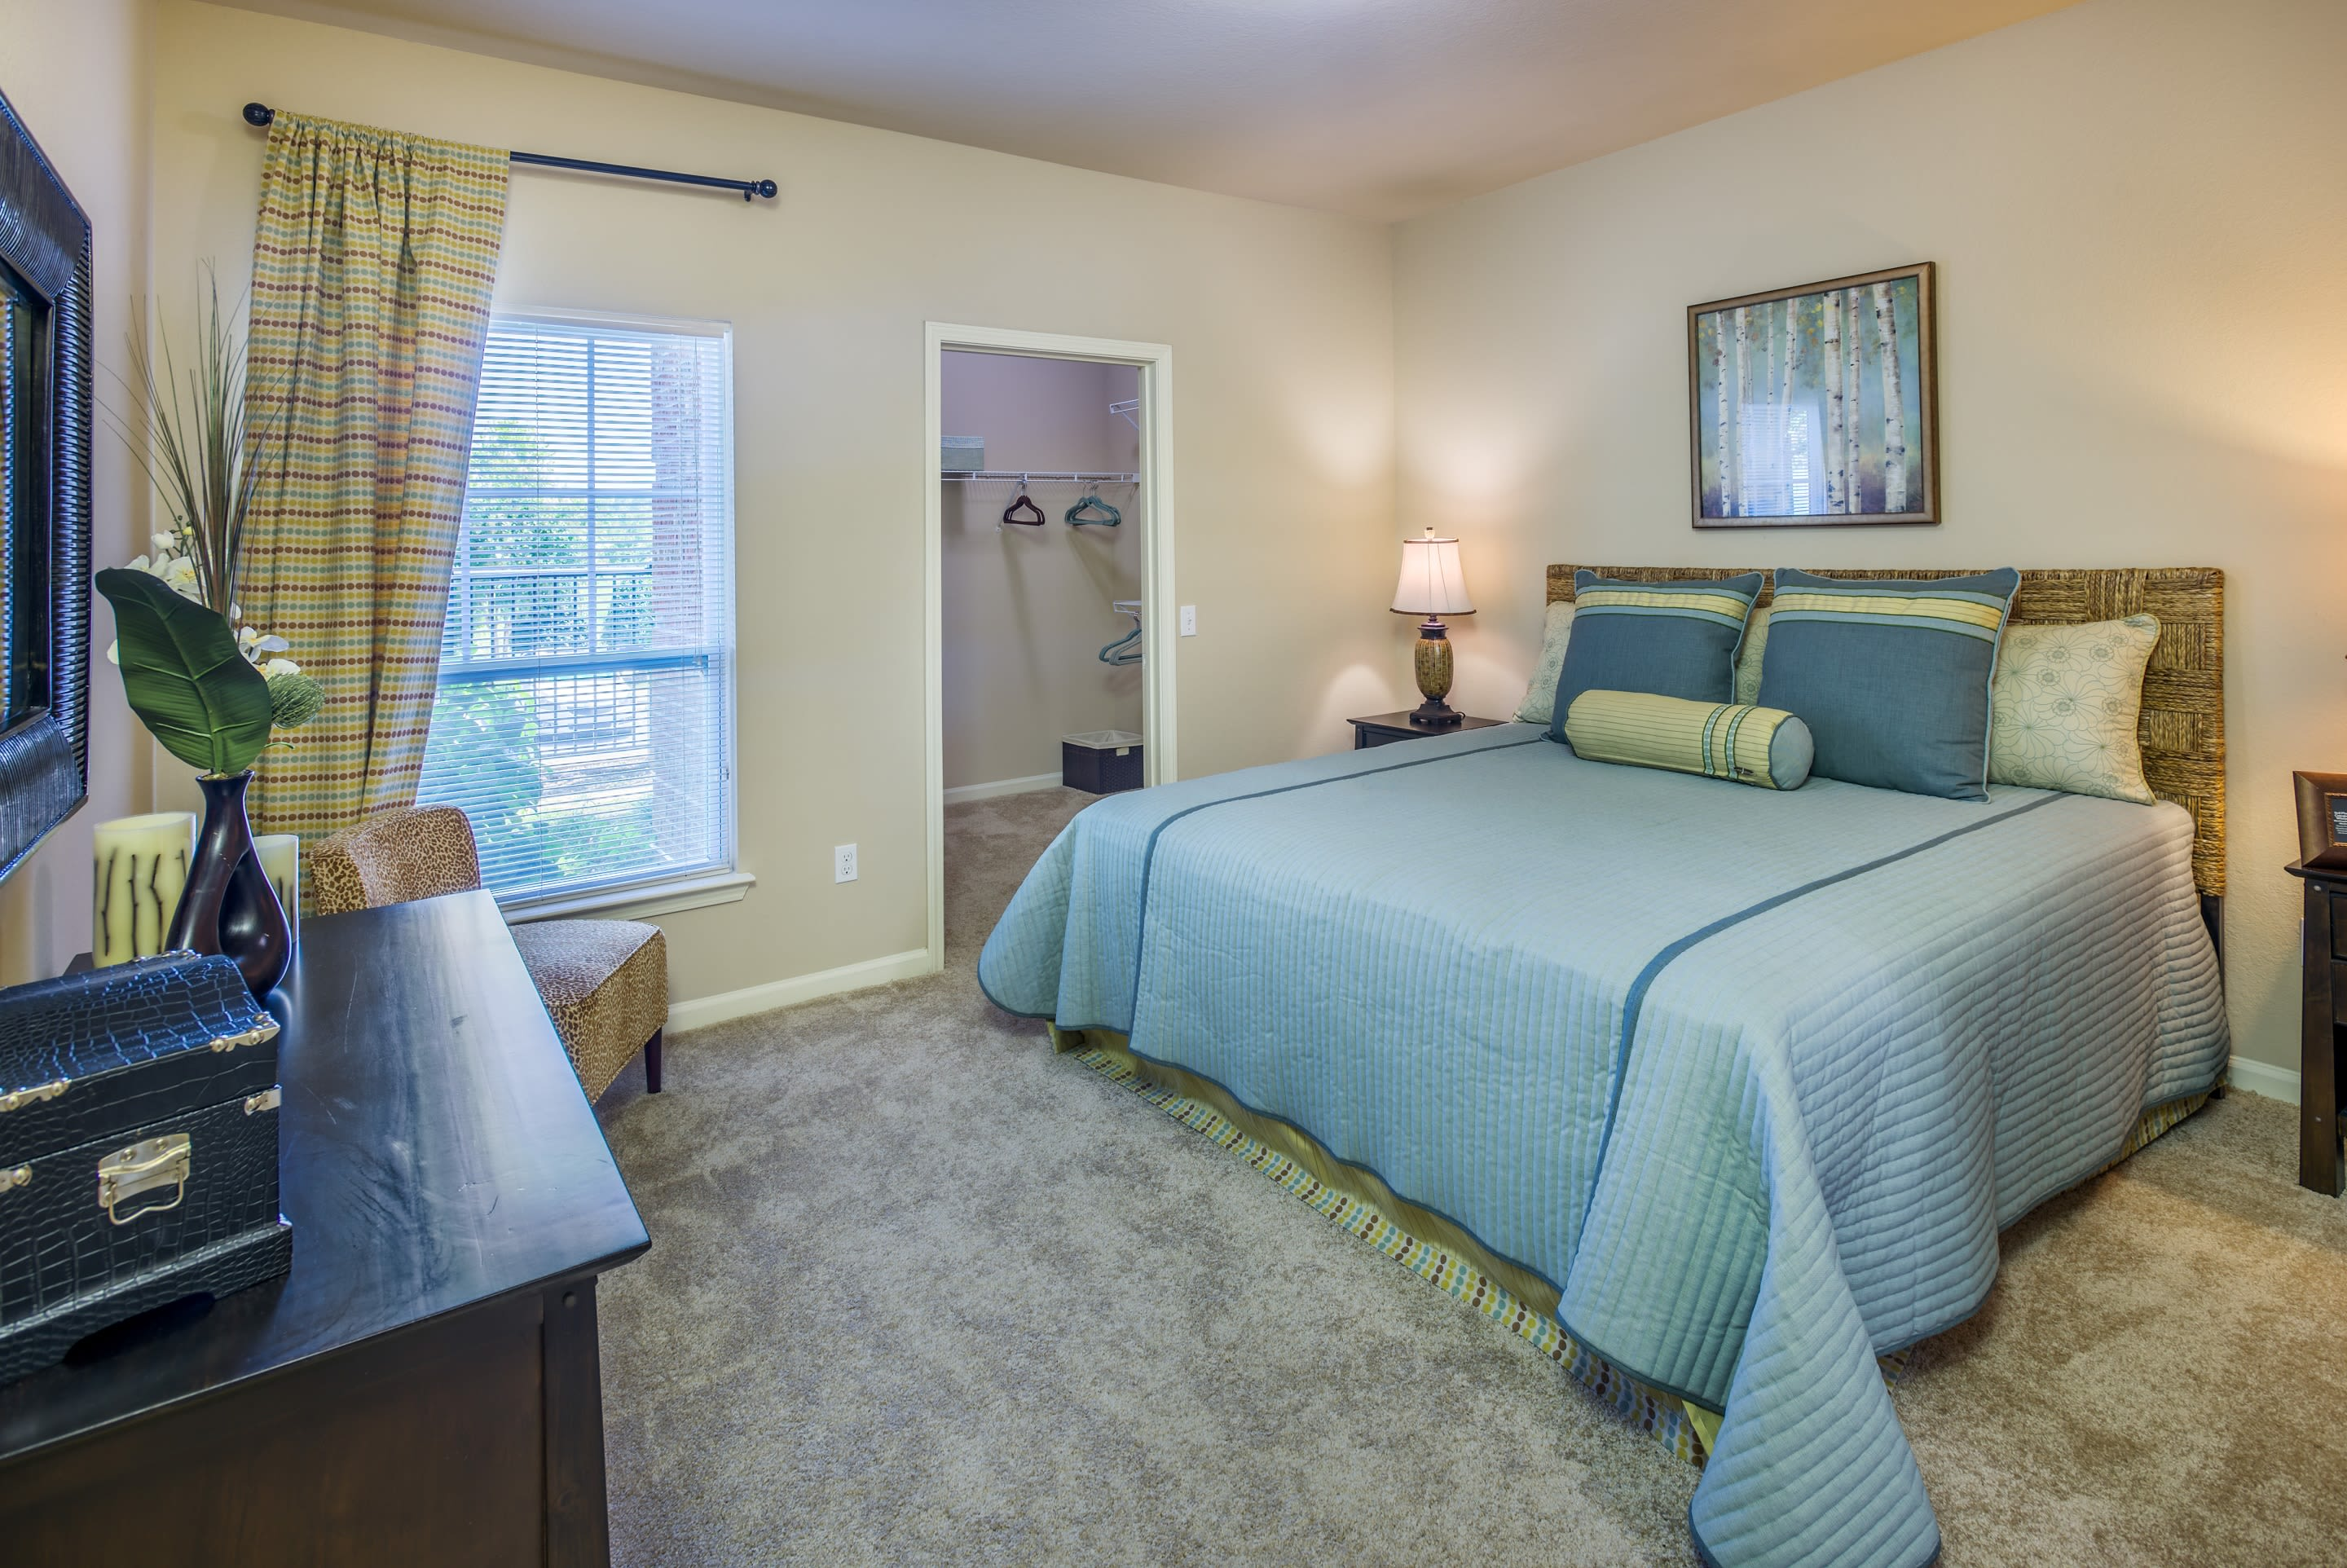 Renovated apartments at The Vive in Kannapolis, North Carolina